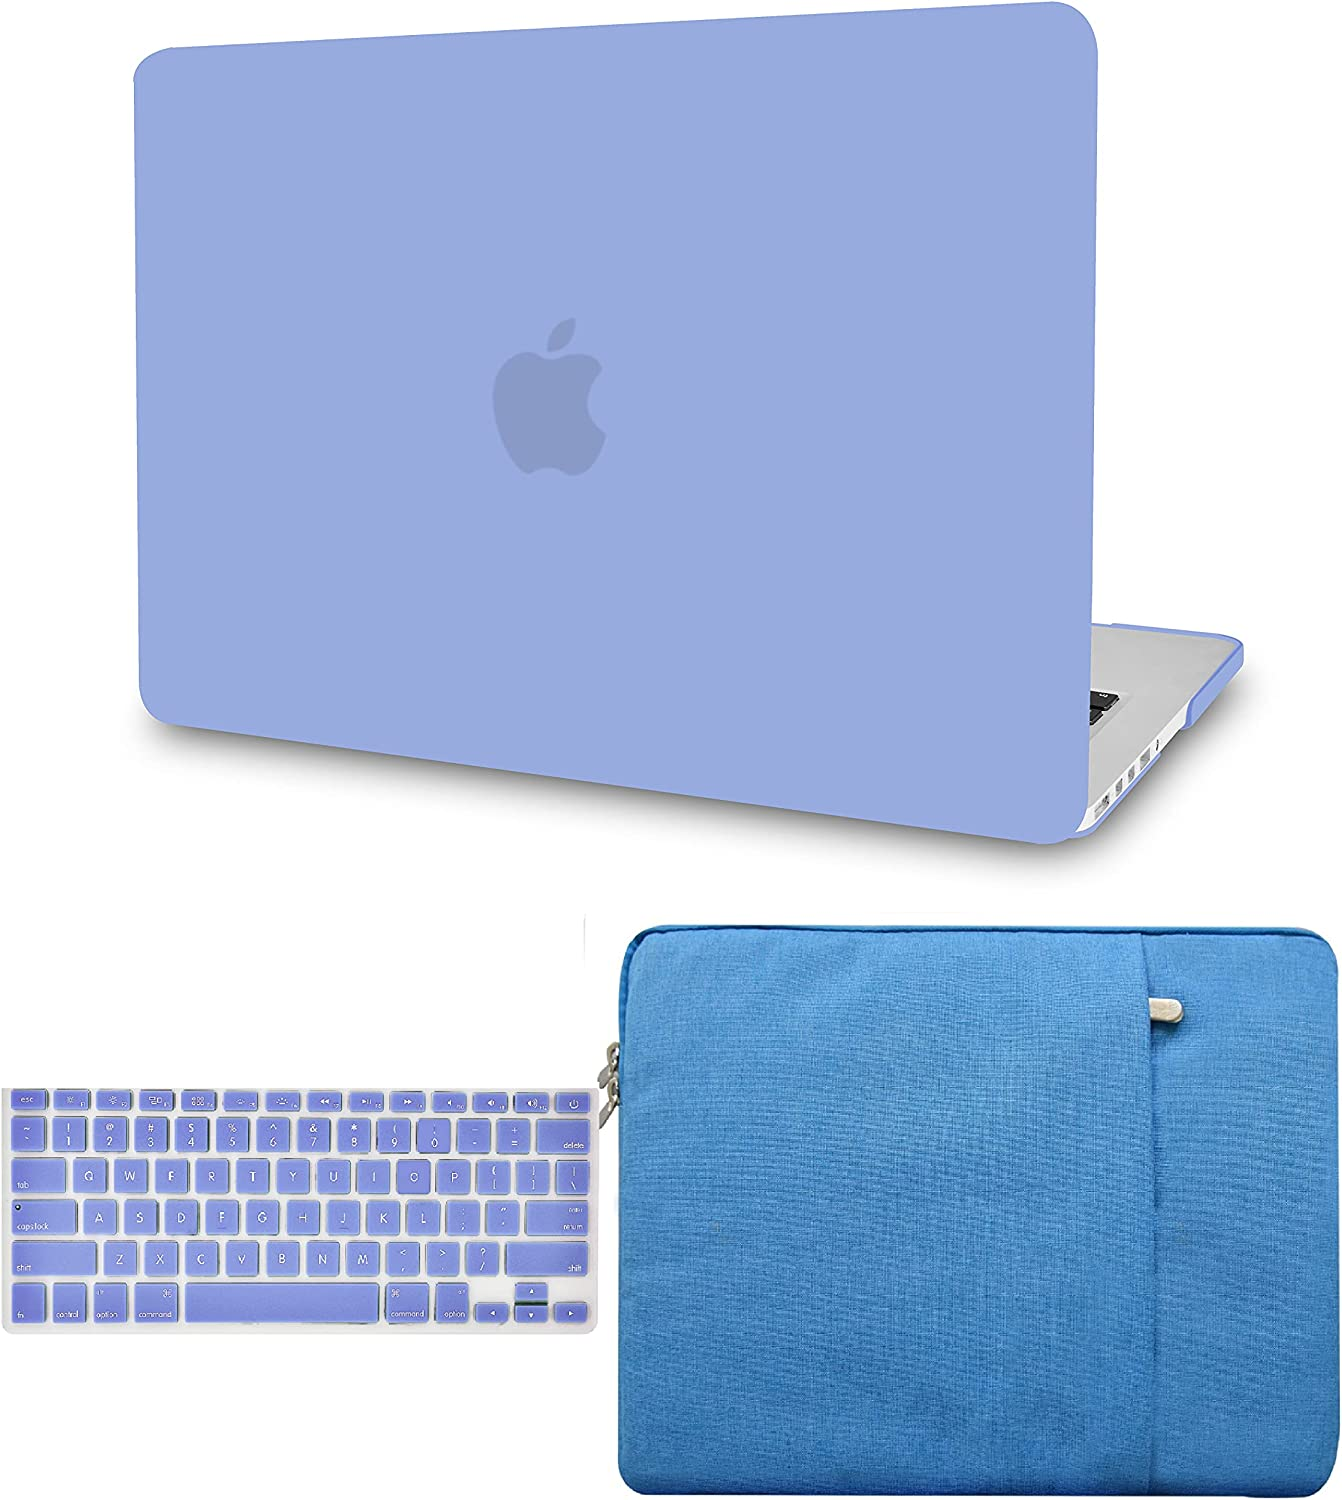 KECC Laptop Case Chicago Mall 2021 new Compatible with MacBook Retina 2020 Air 20 13